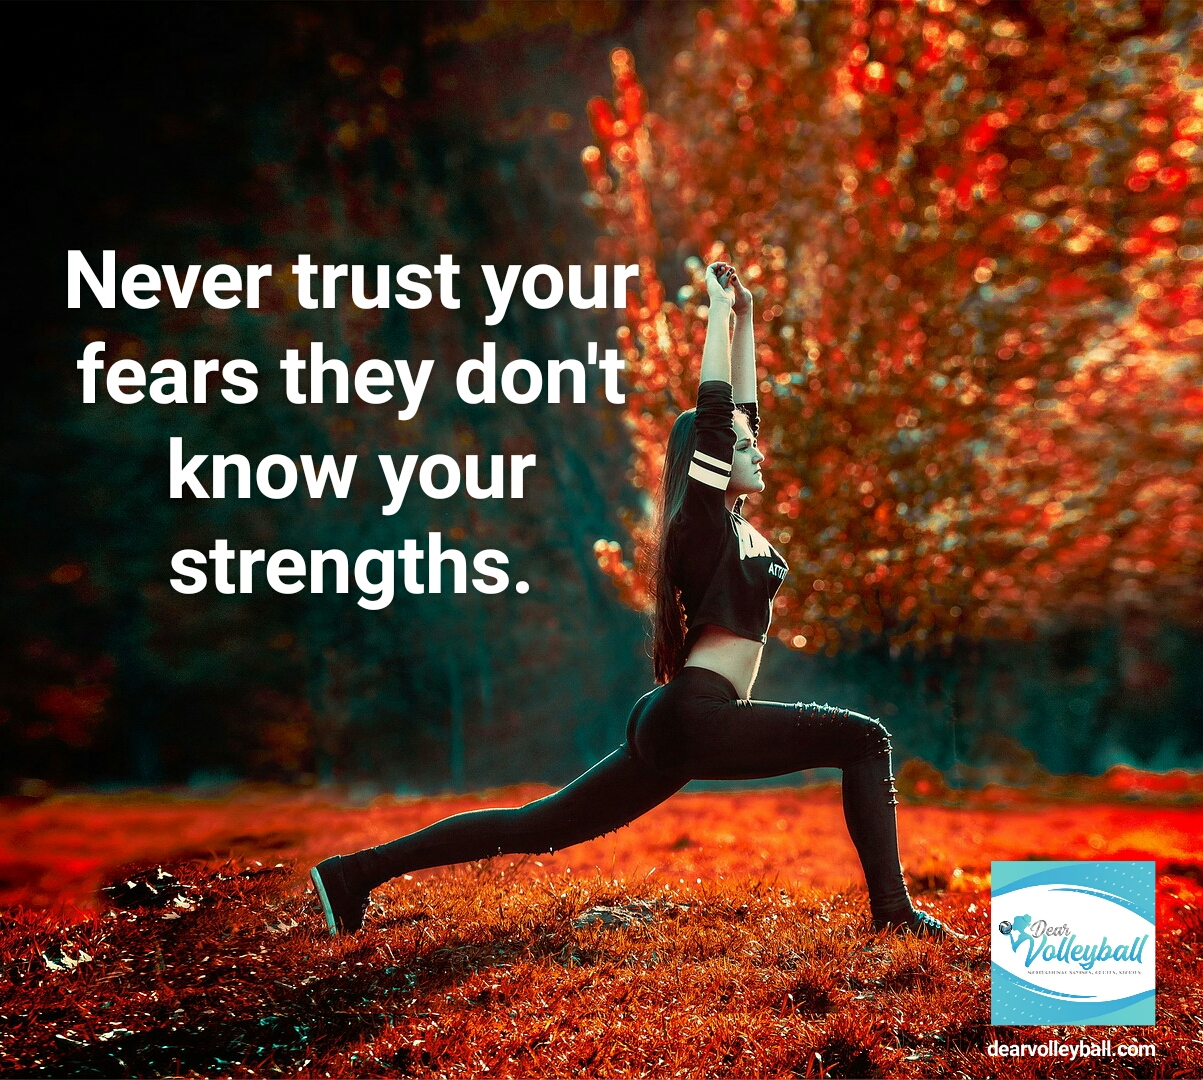 Never trust your fears they dont know your strengths and other motivating quotes on DearVolleyball.com